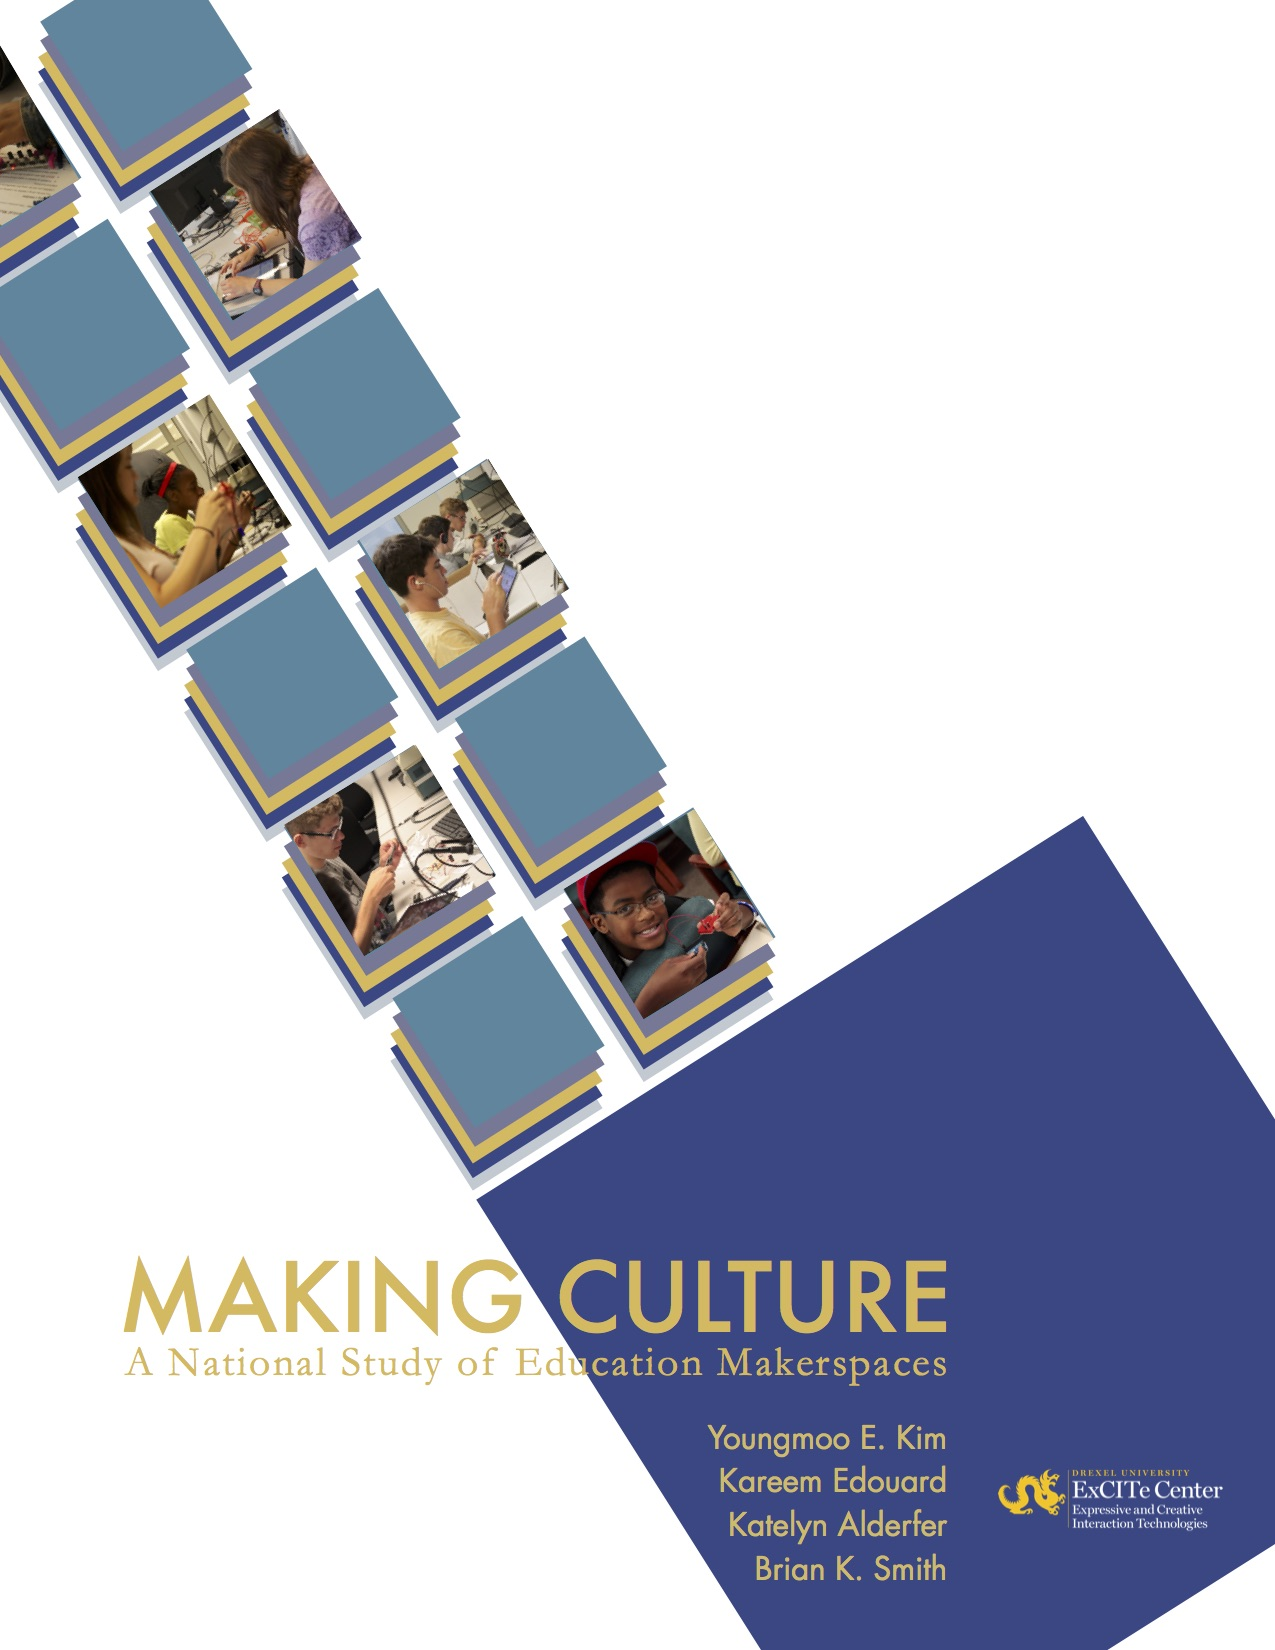 Making Culture Report thumbnail